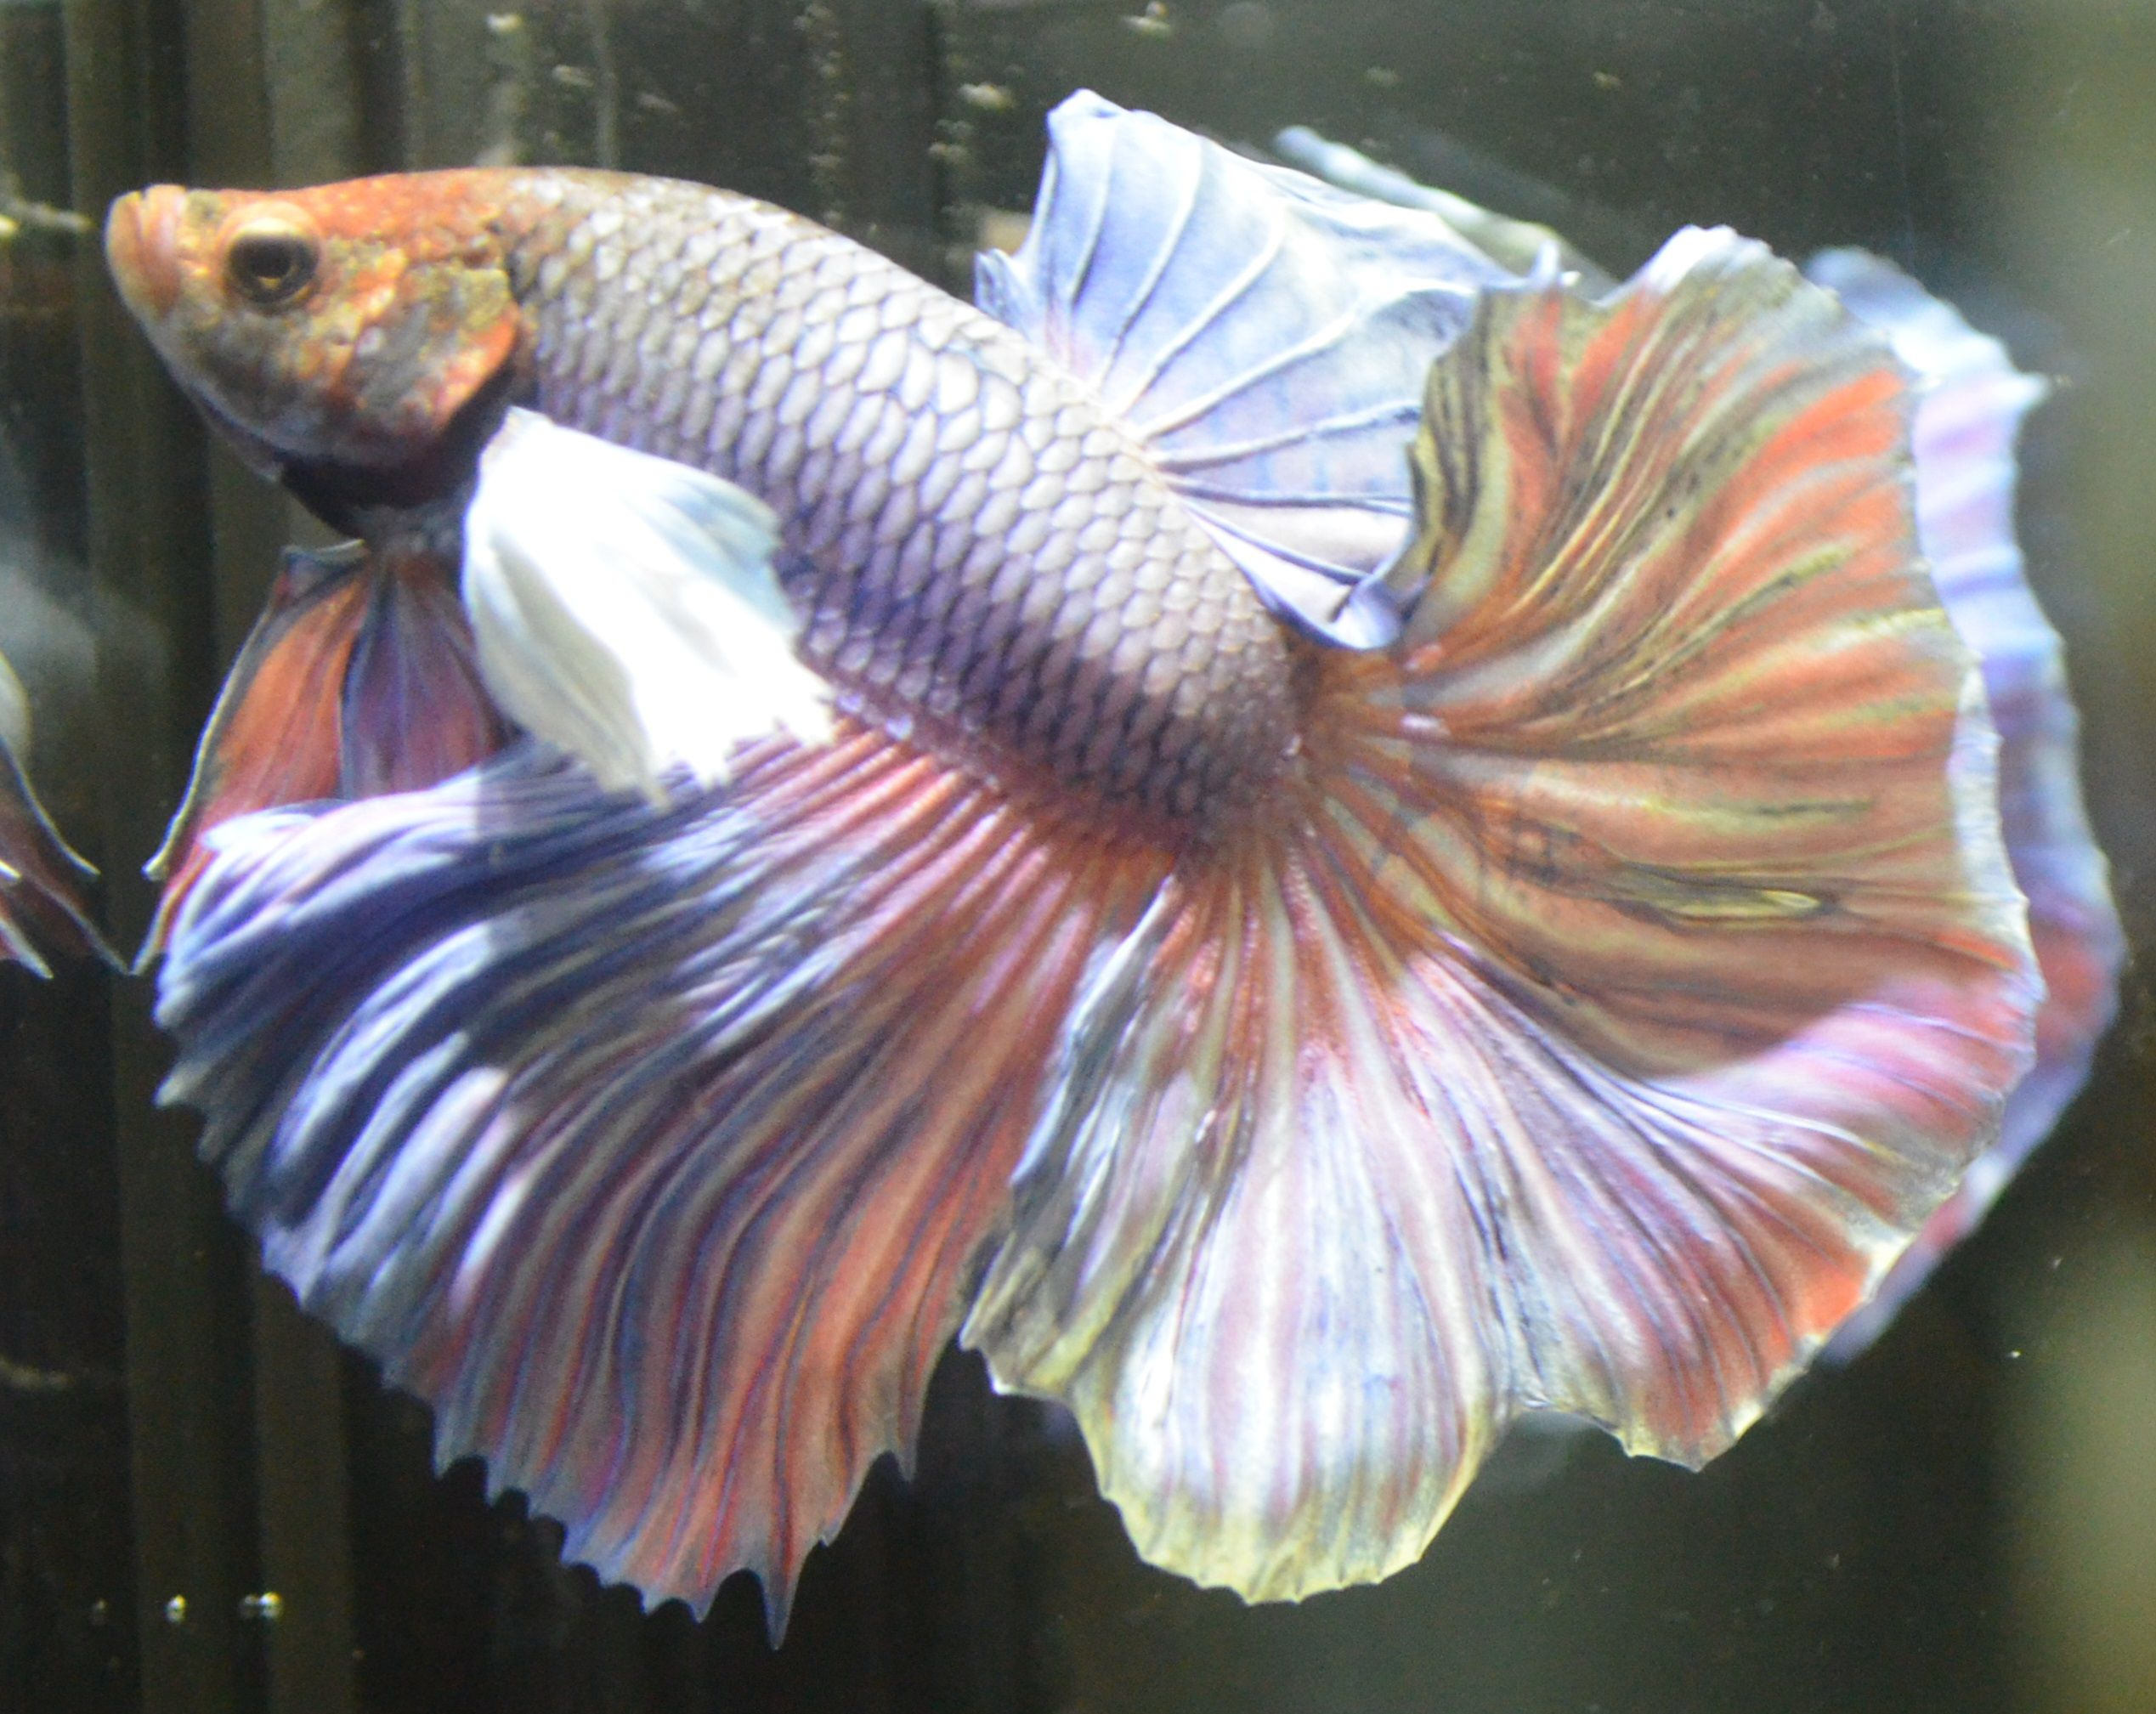 Live betta fish pastel multicolred dumbo ears halfmoon for Betta fish sale